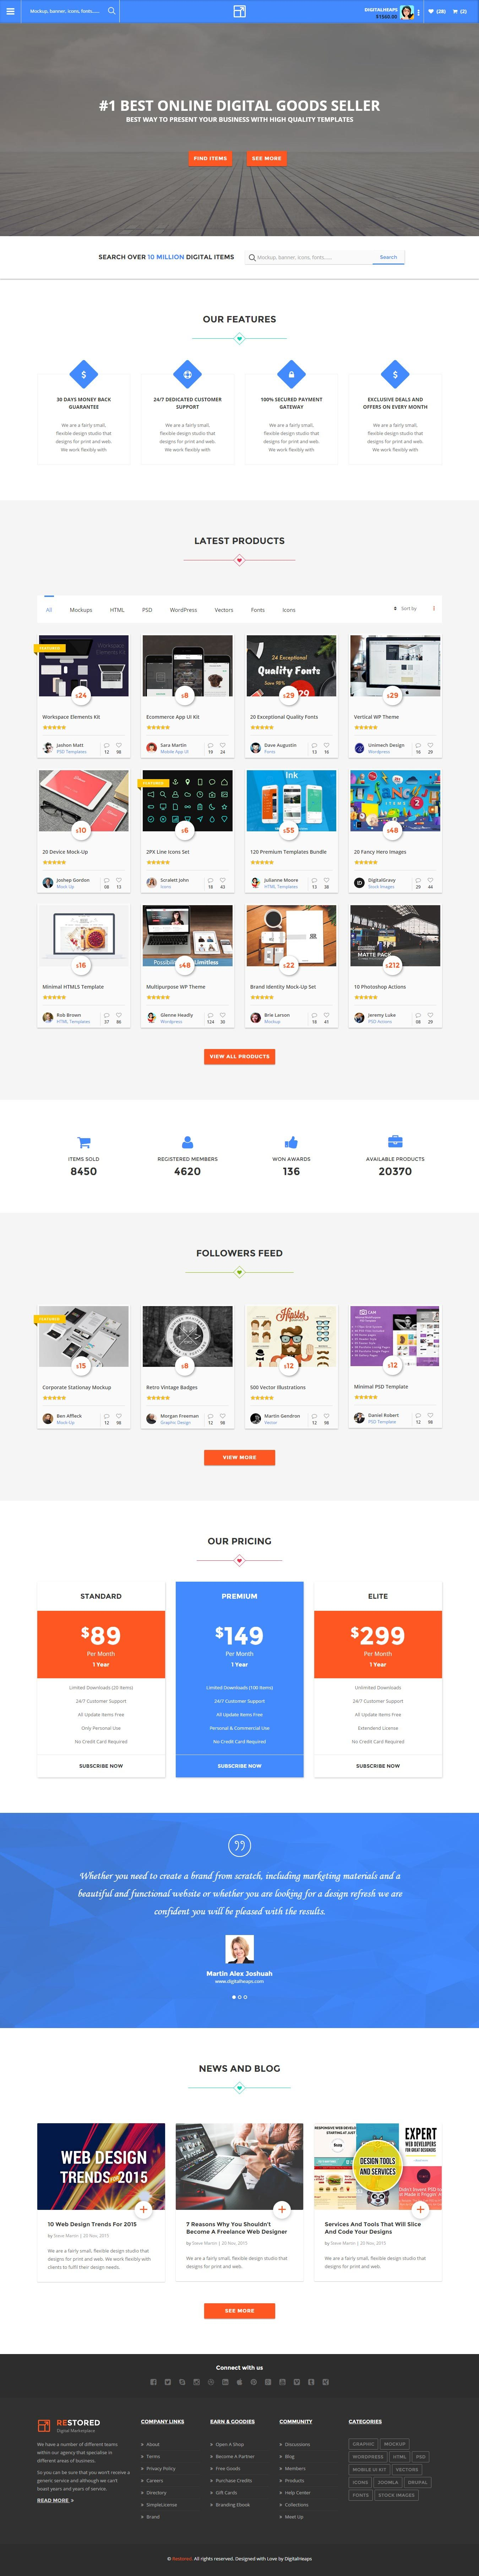 Restored Market Placecoupons And Deals Html Template By Digisamaritan